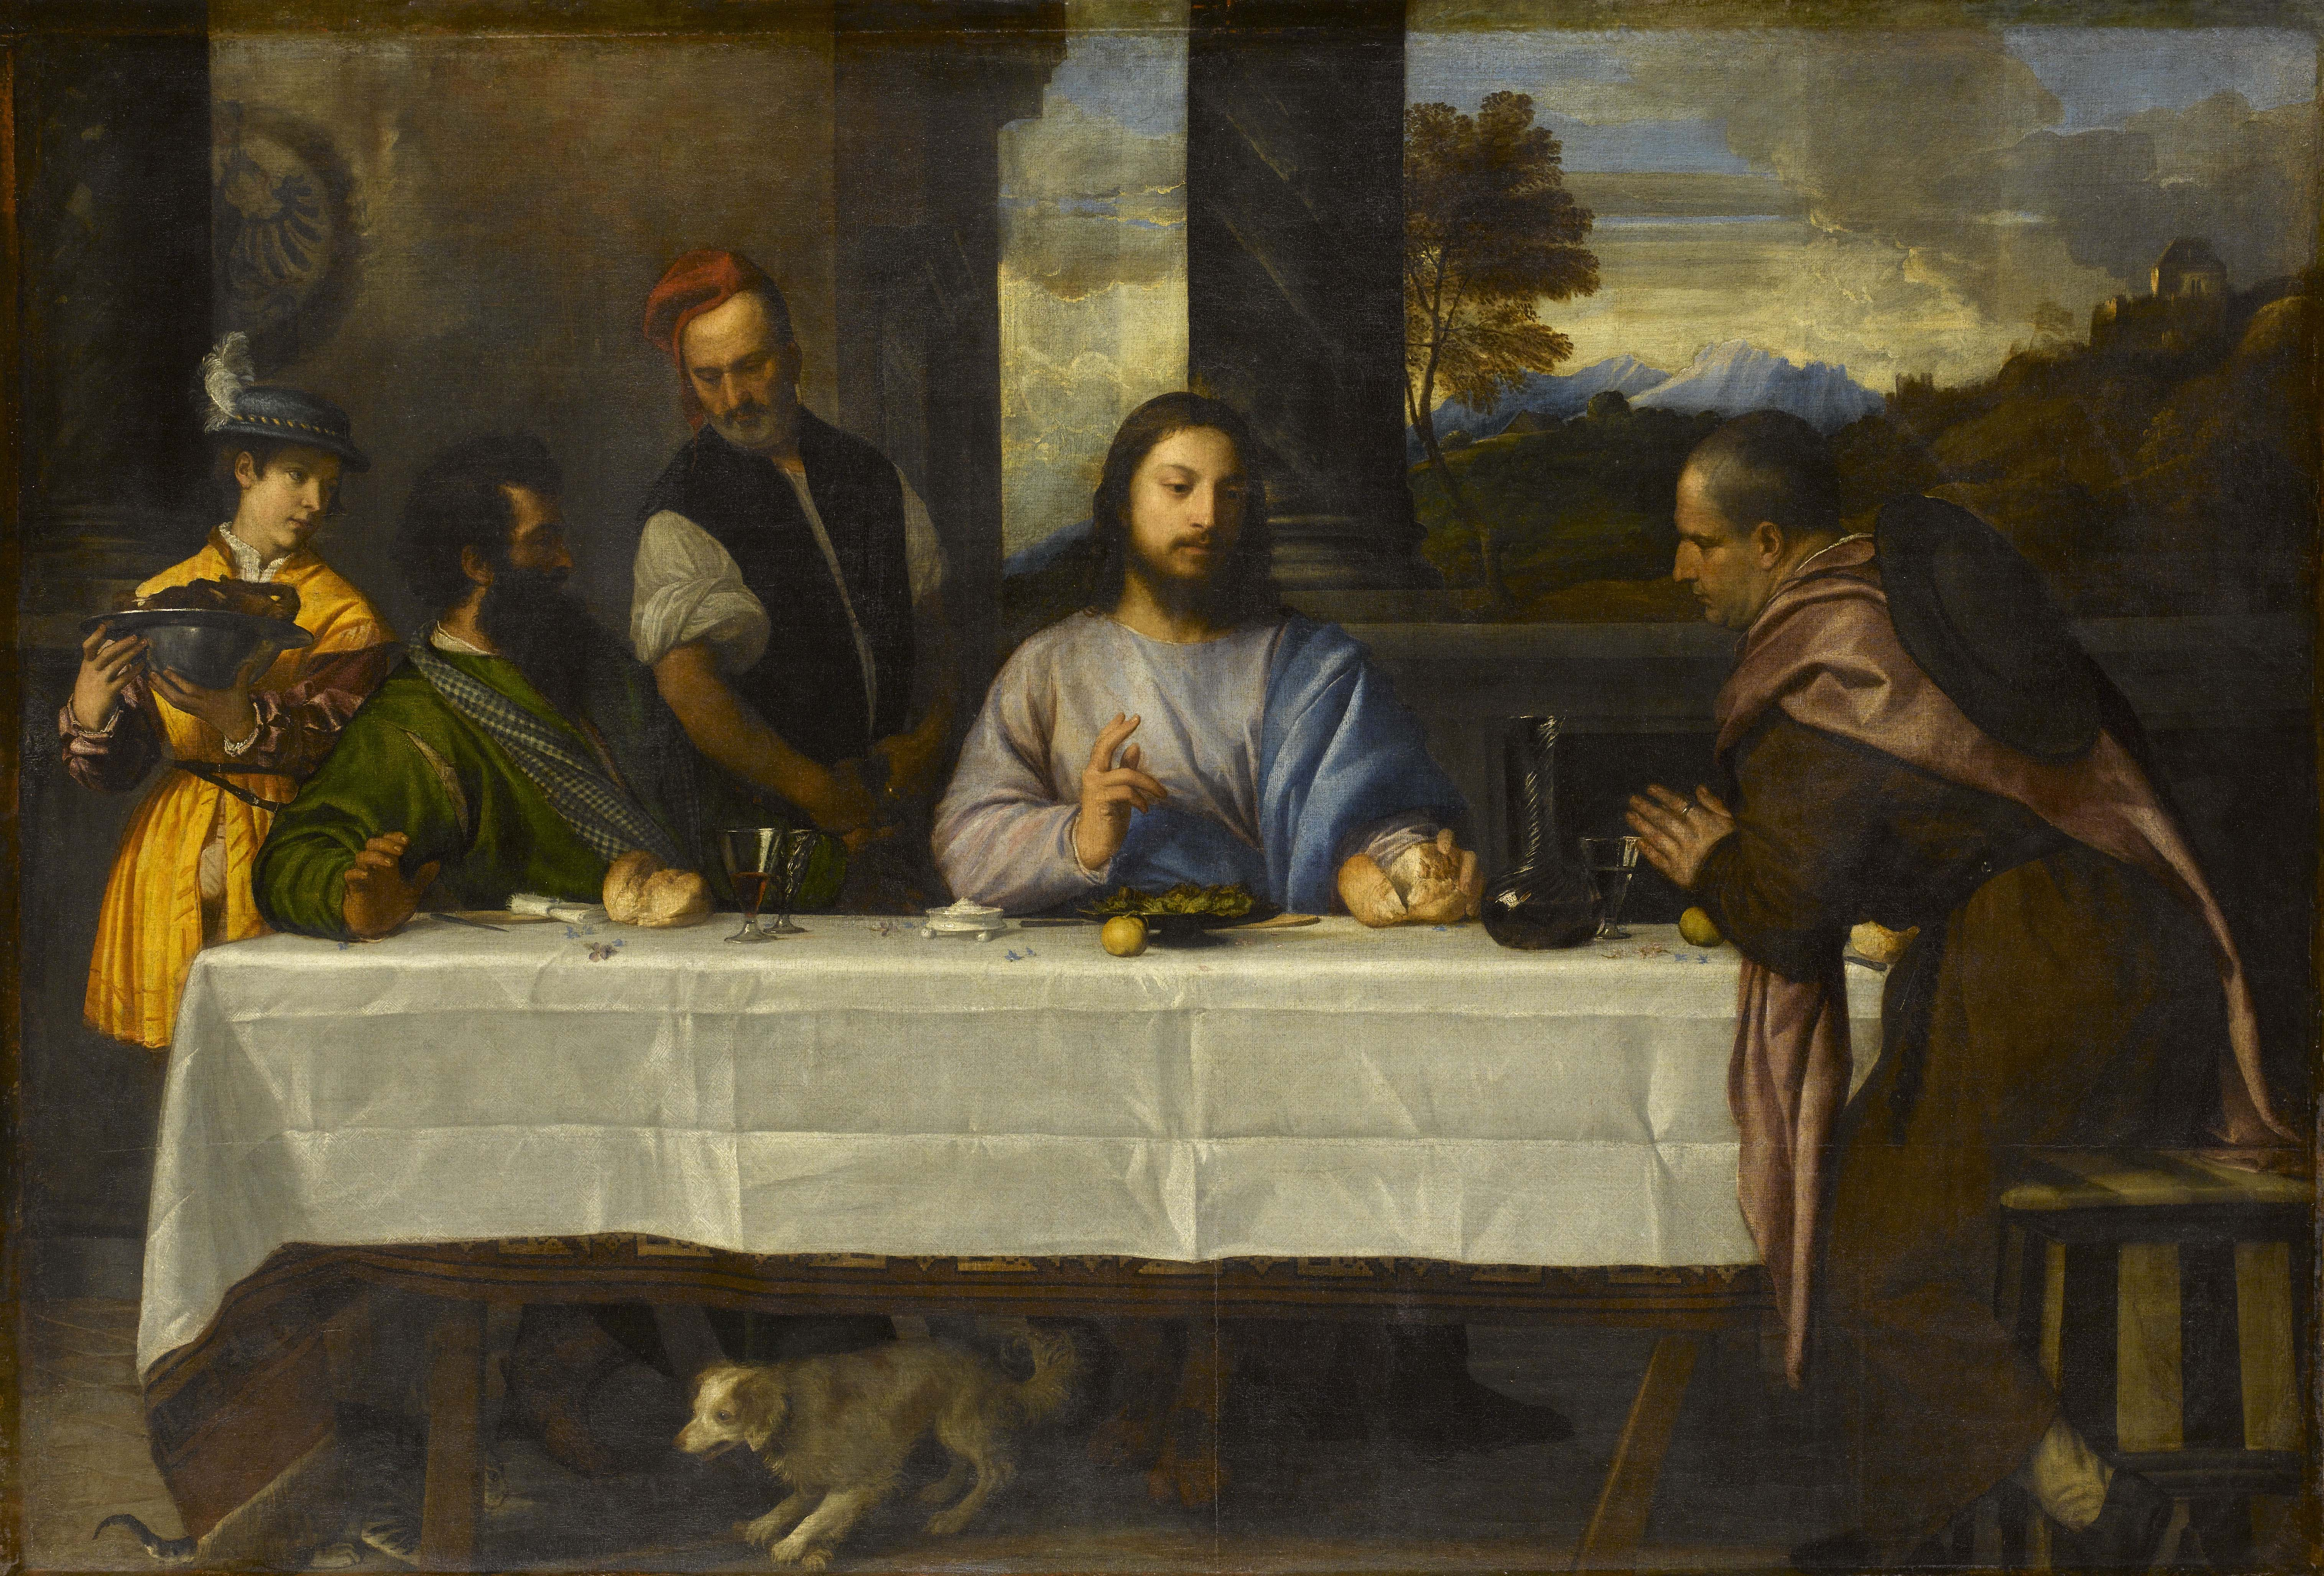 Titian, The Supper at Emmaus, c.1530